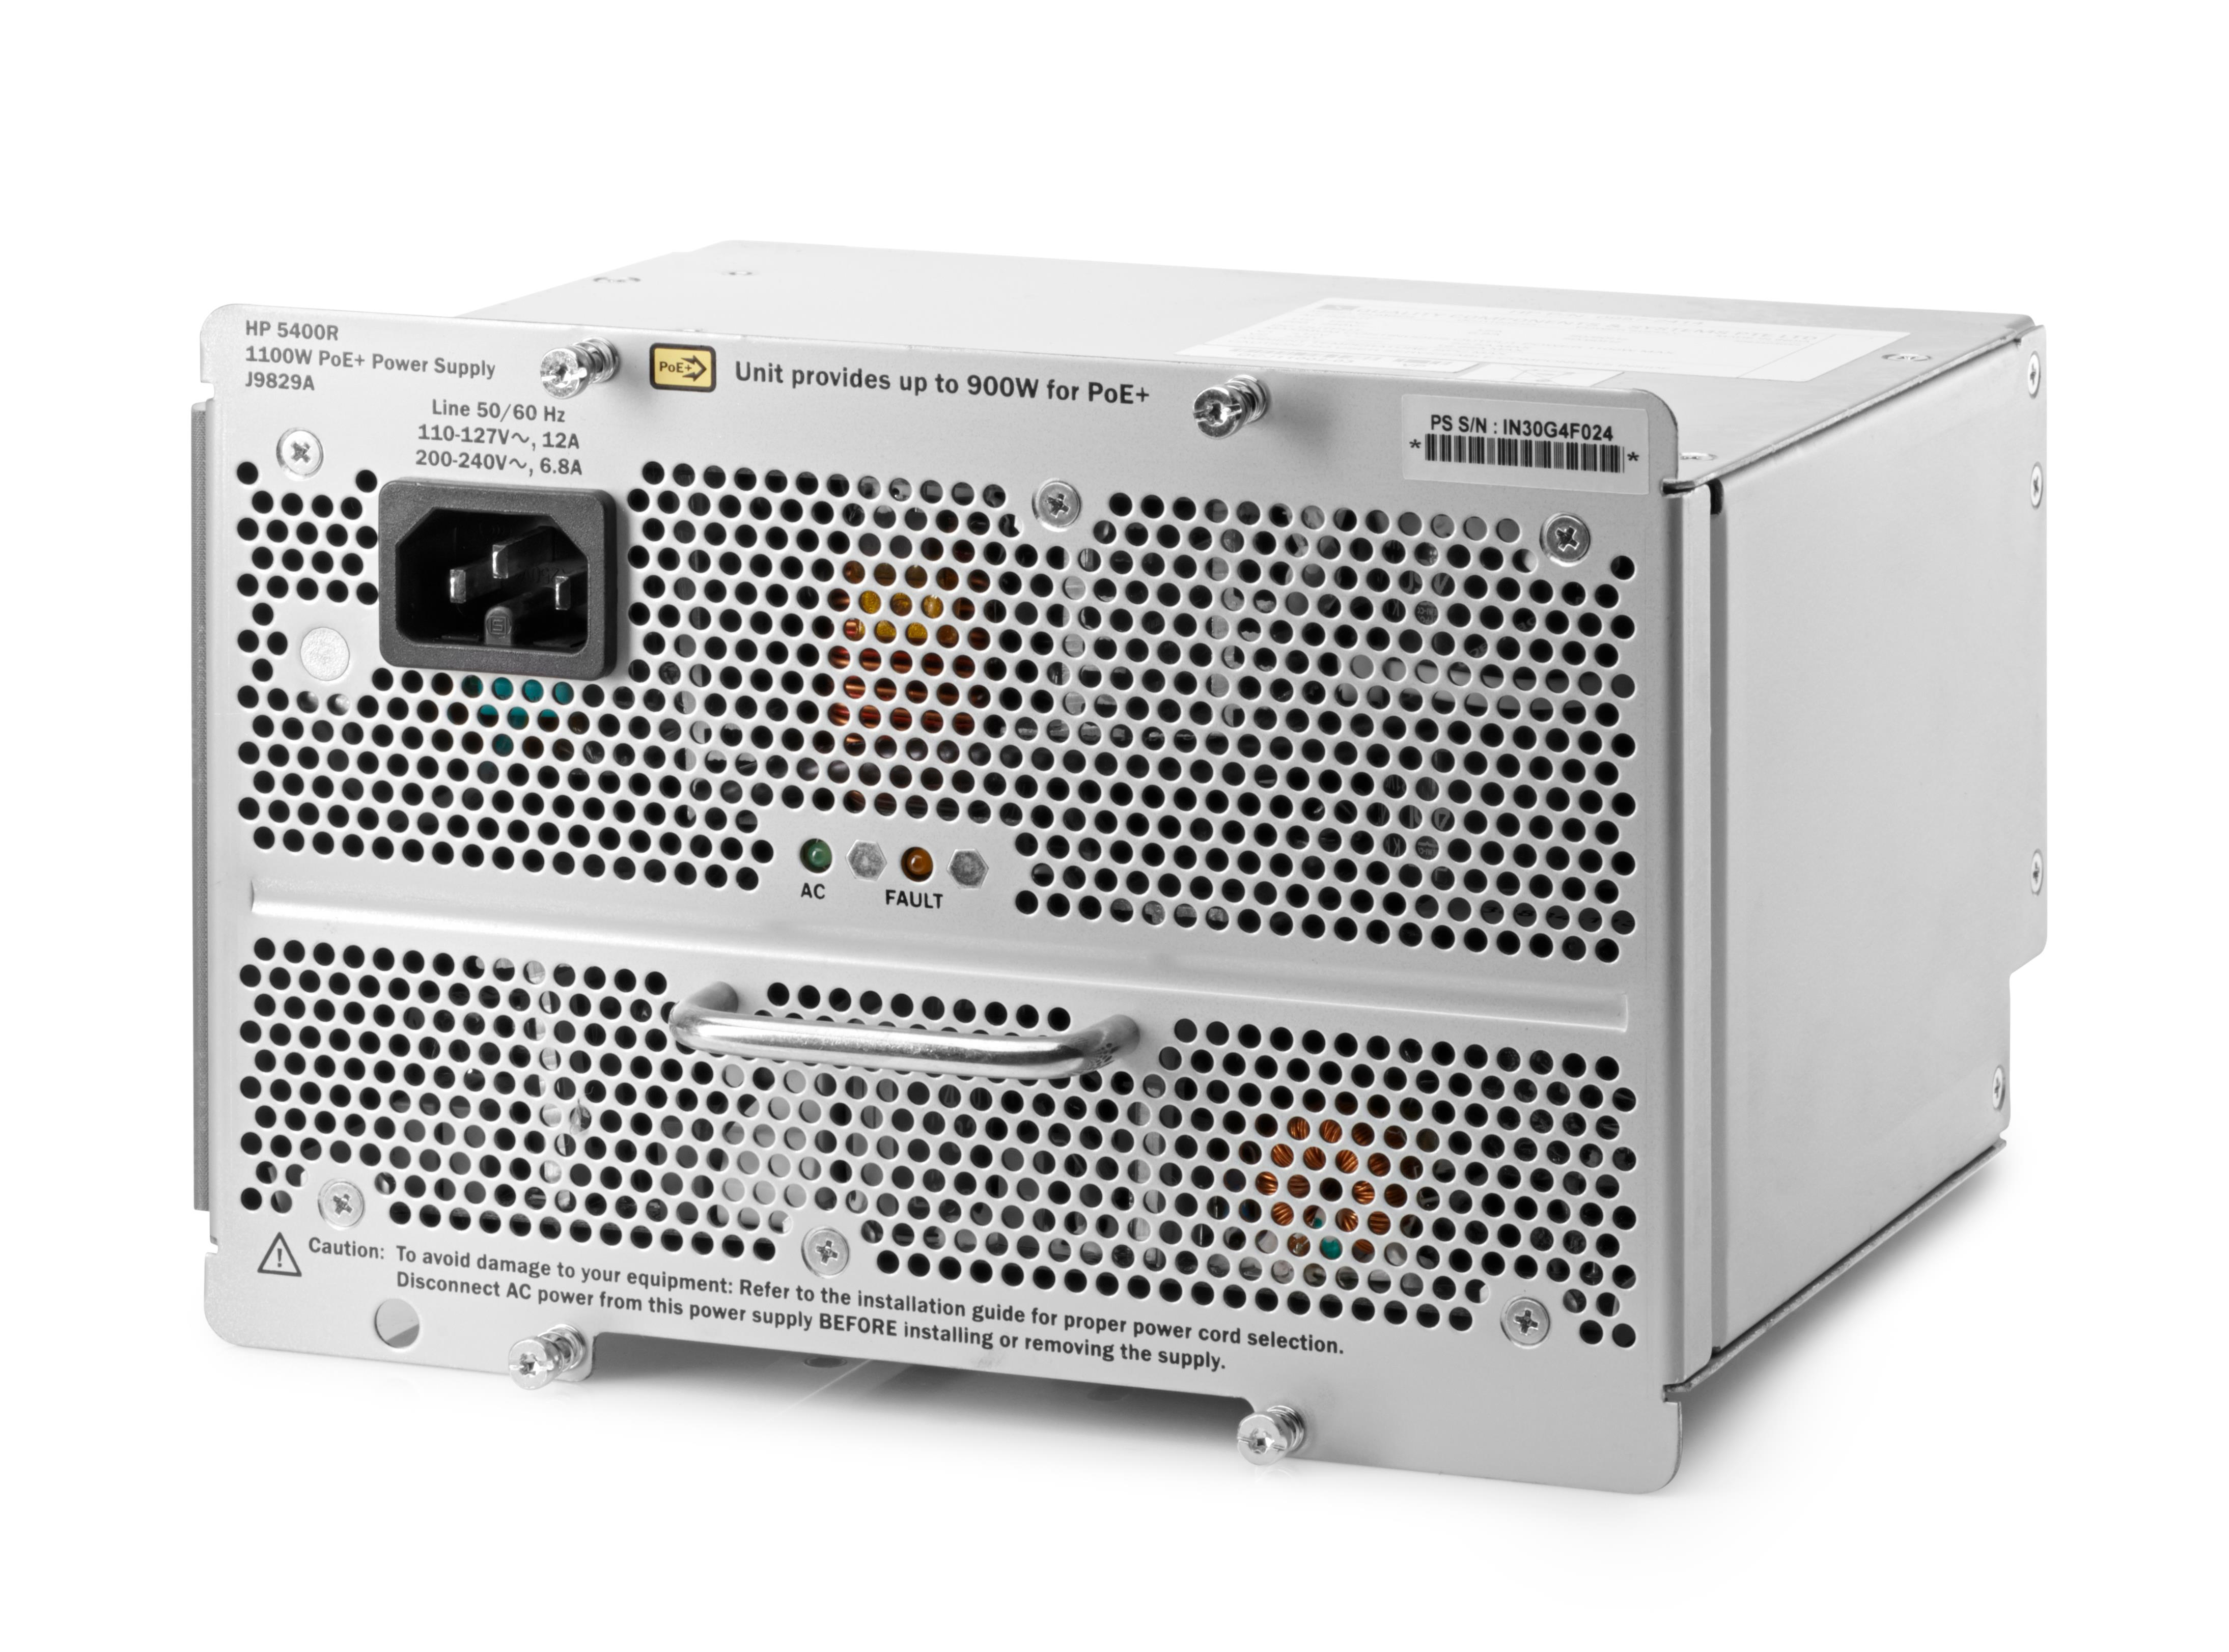 HP (700W) Power Supply Unit for 5400R PoE+ zl2